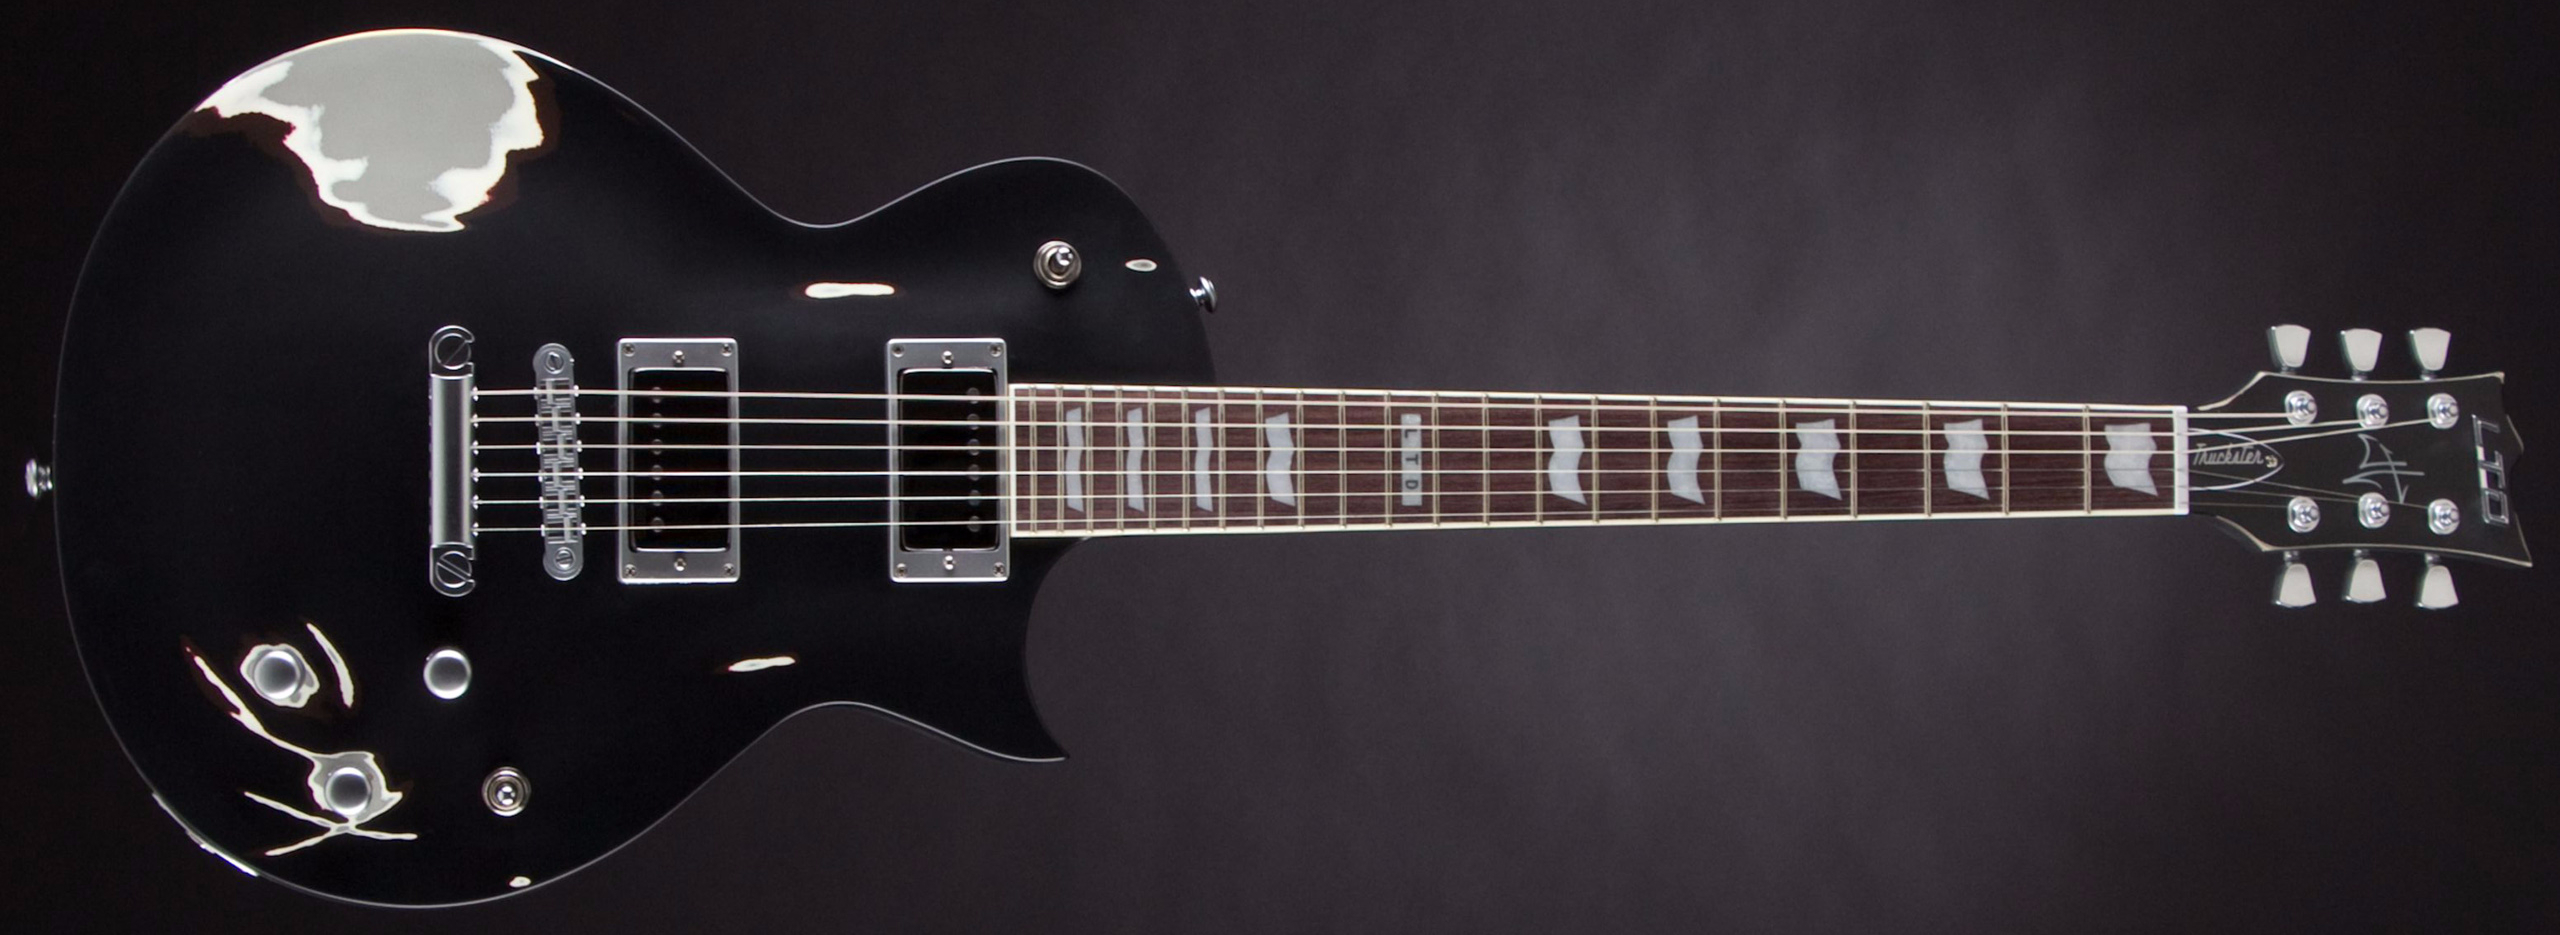 ESP LTD Truckster Black Satin James Hetfield Signature